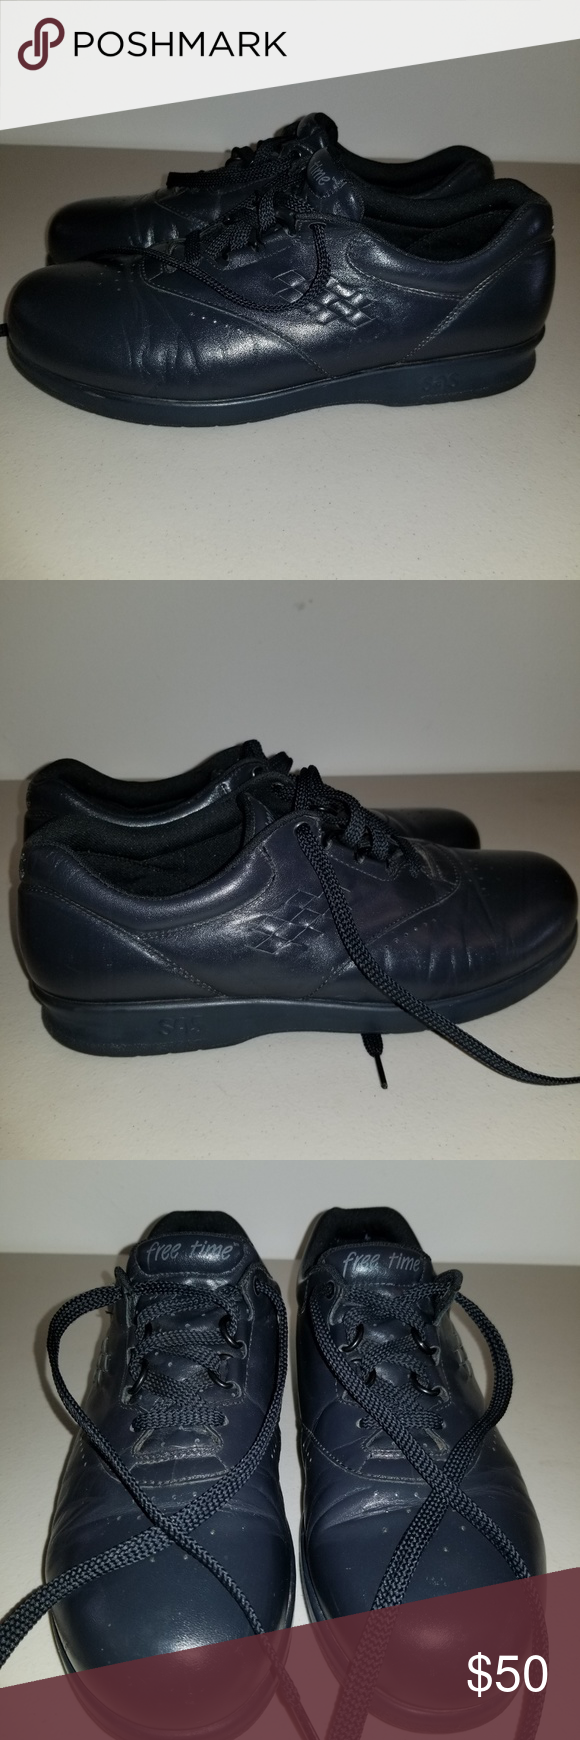 c89adca83 SAS Women s FREE TIME Black Comfort Shoes Sz 9 N SAS Women s FREE TIME Black  Comfort Shoes Sz 9 N. Gently Used Great Condition. SAS Shoes Sneakers